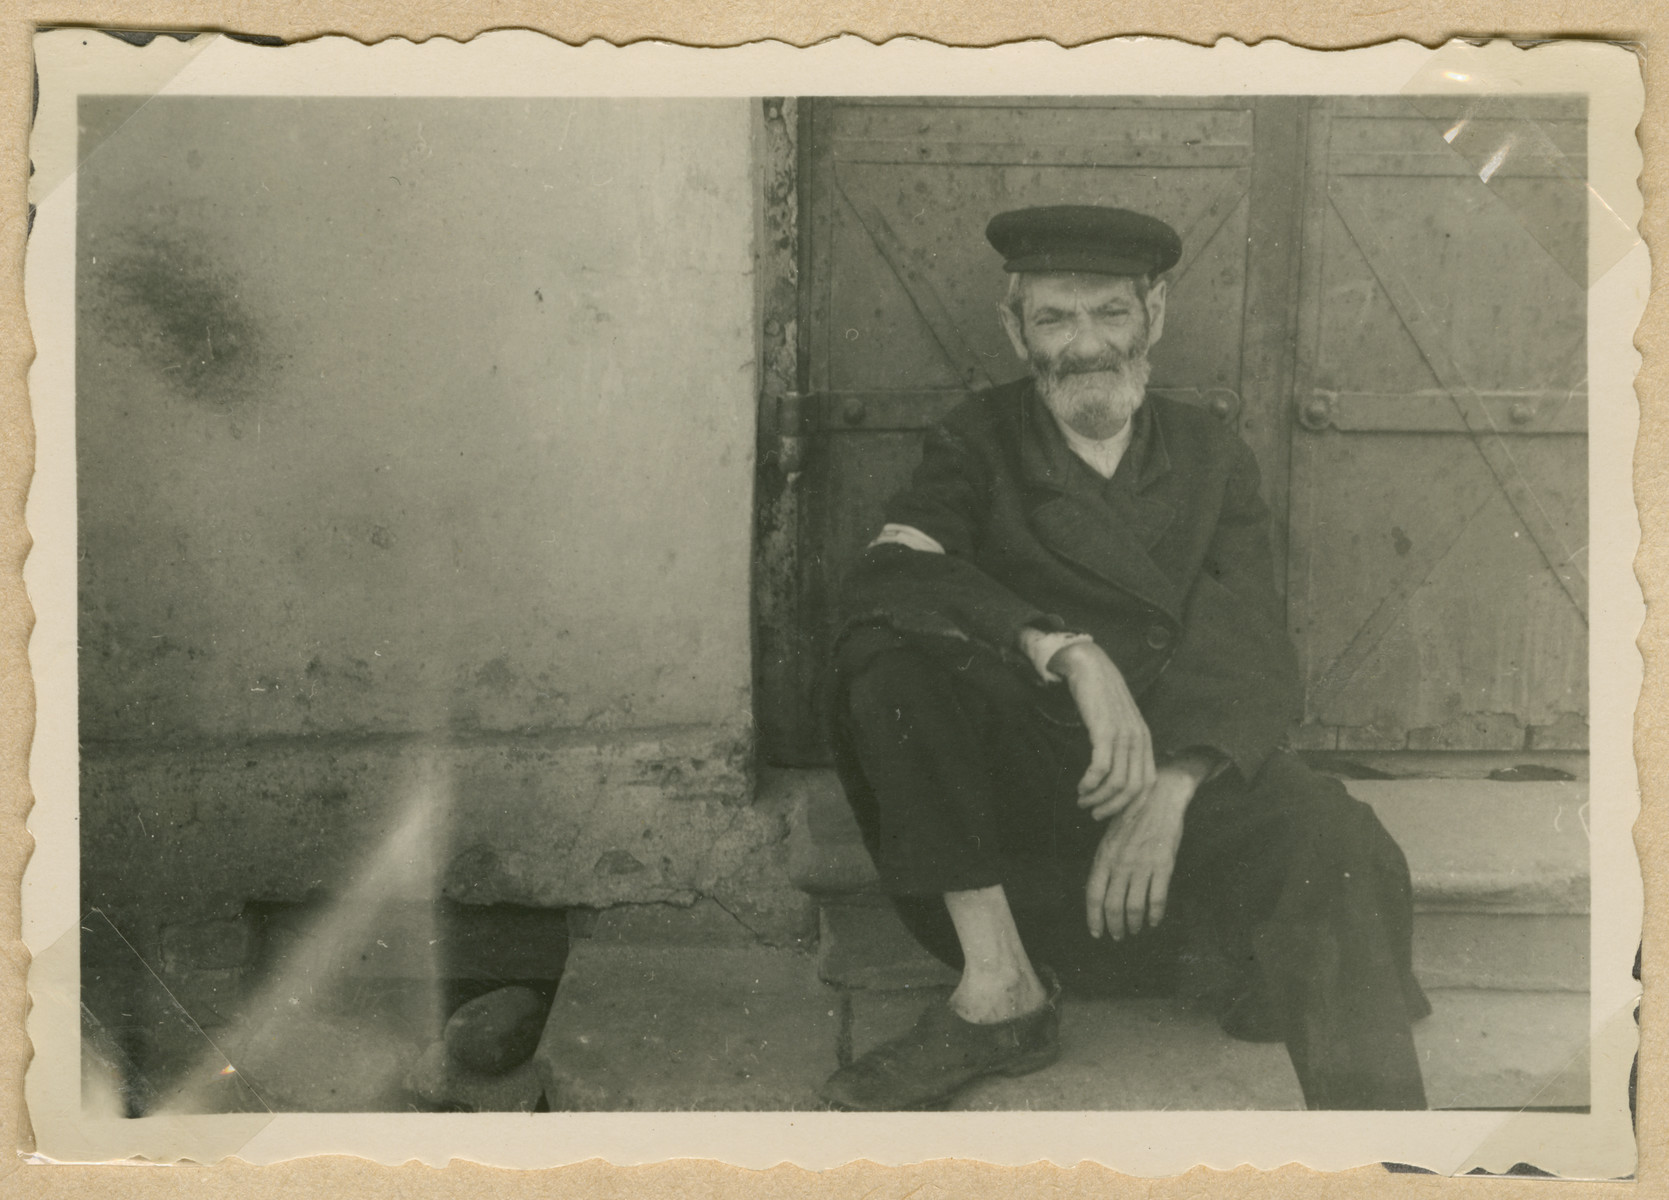 Close-up view of a bearded man sitting on a doorstep in what probably is the Deblin-Irena ghetto.